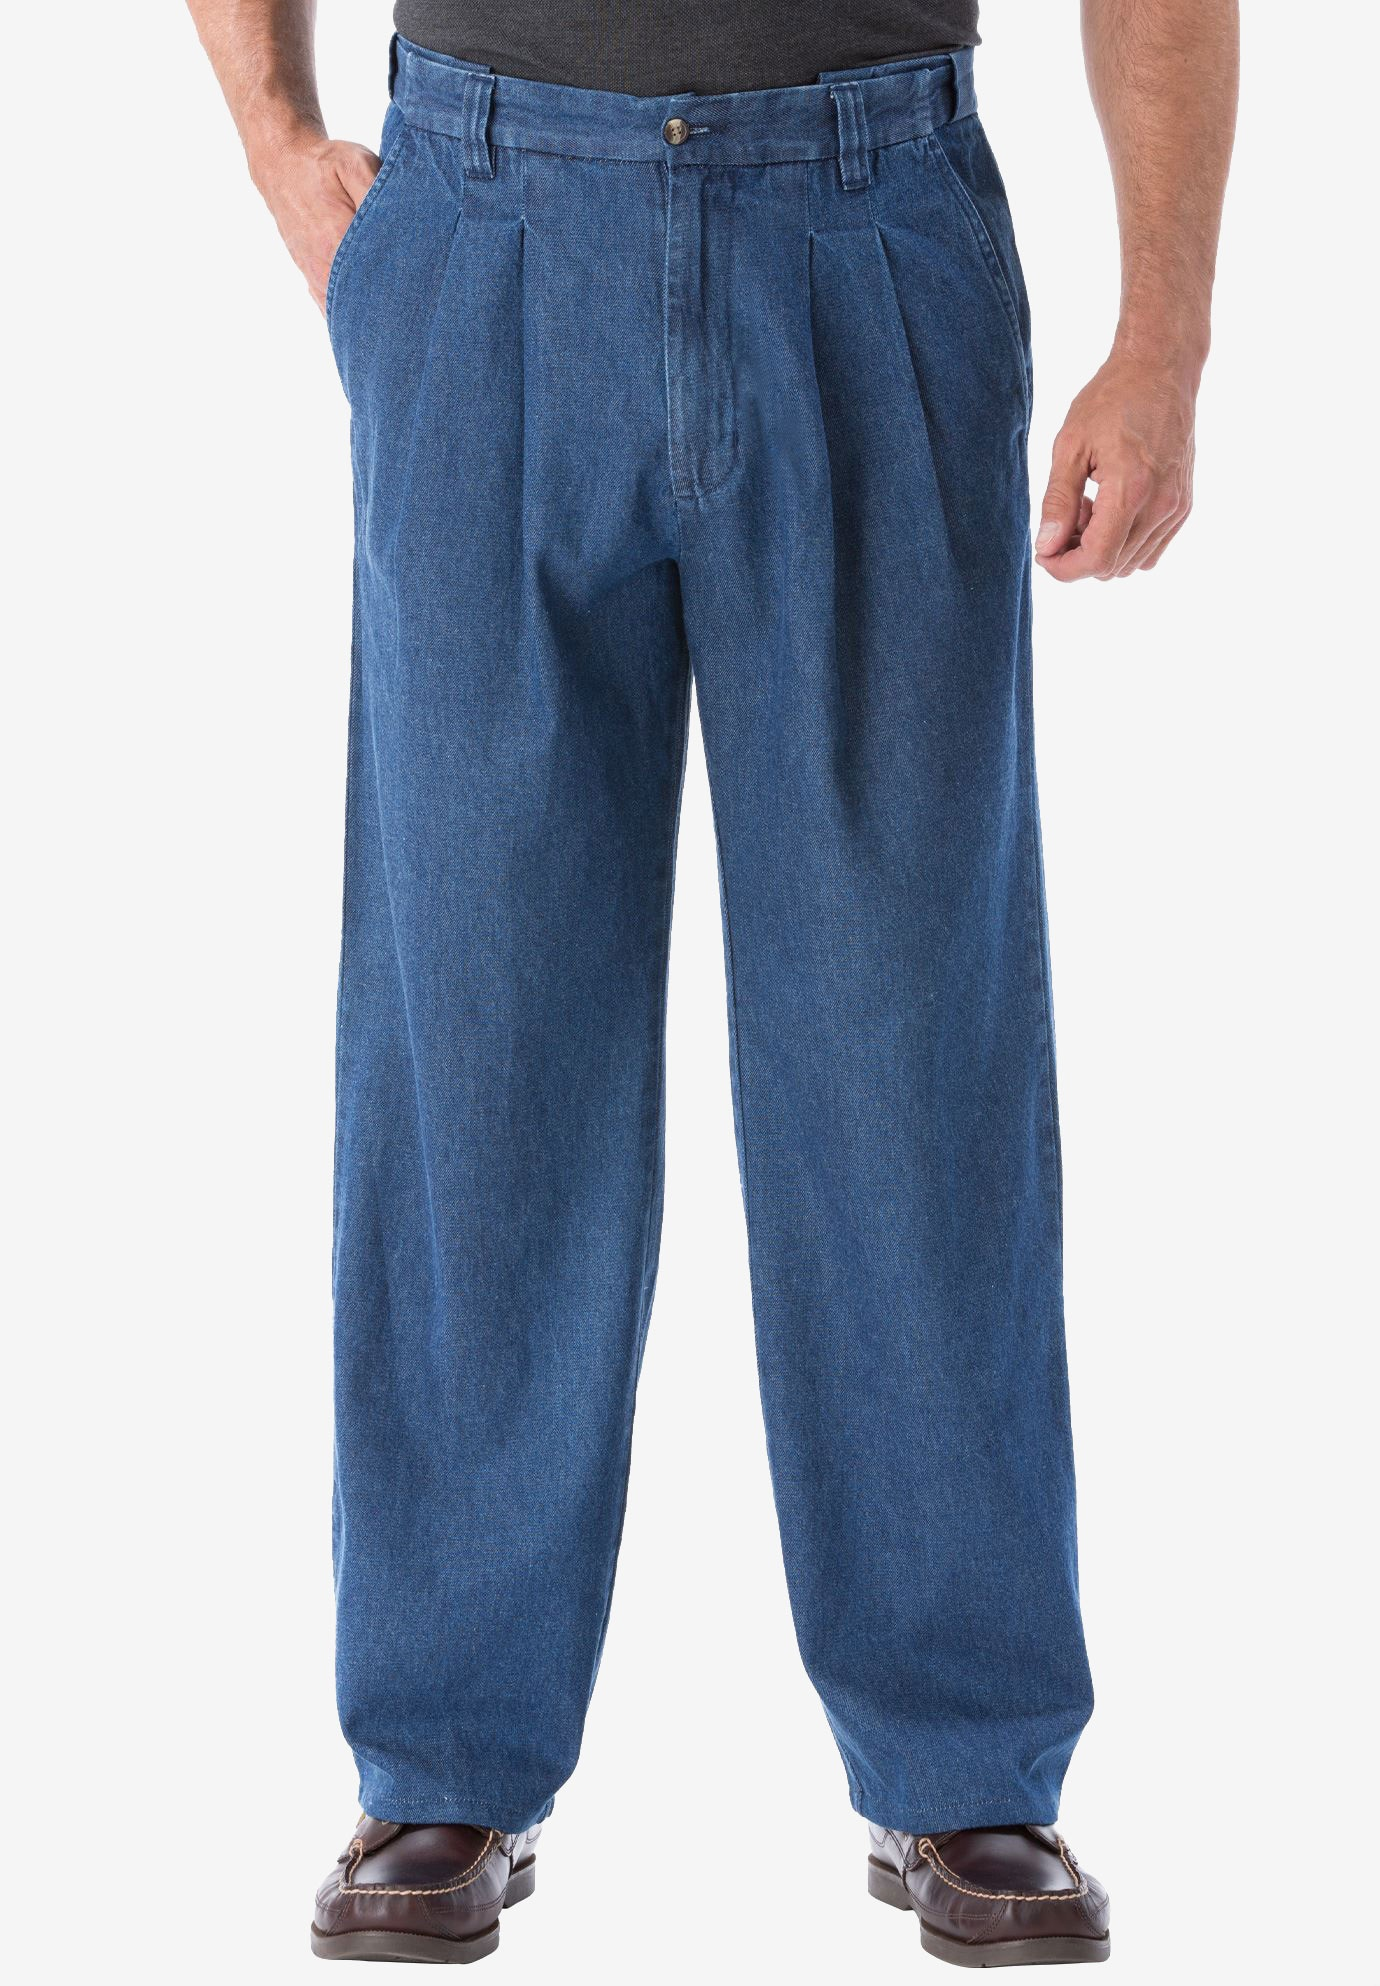 b27216b4b74 Relaxed Fit Comfort Waist Pleat-Front Expandable Jeans